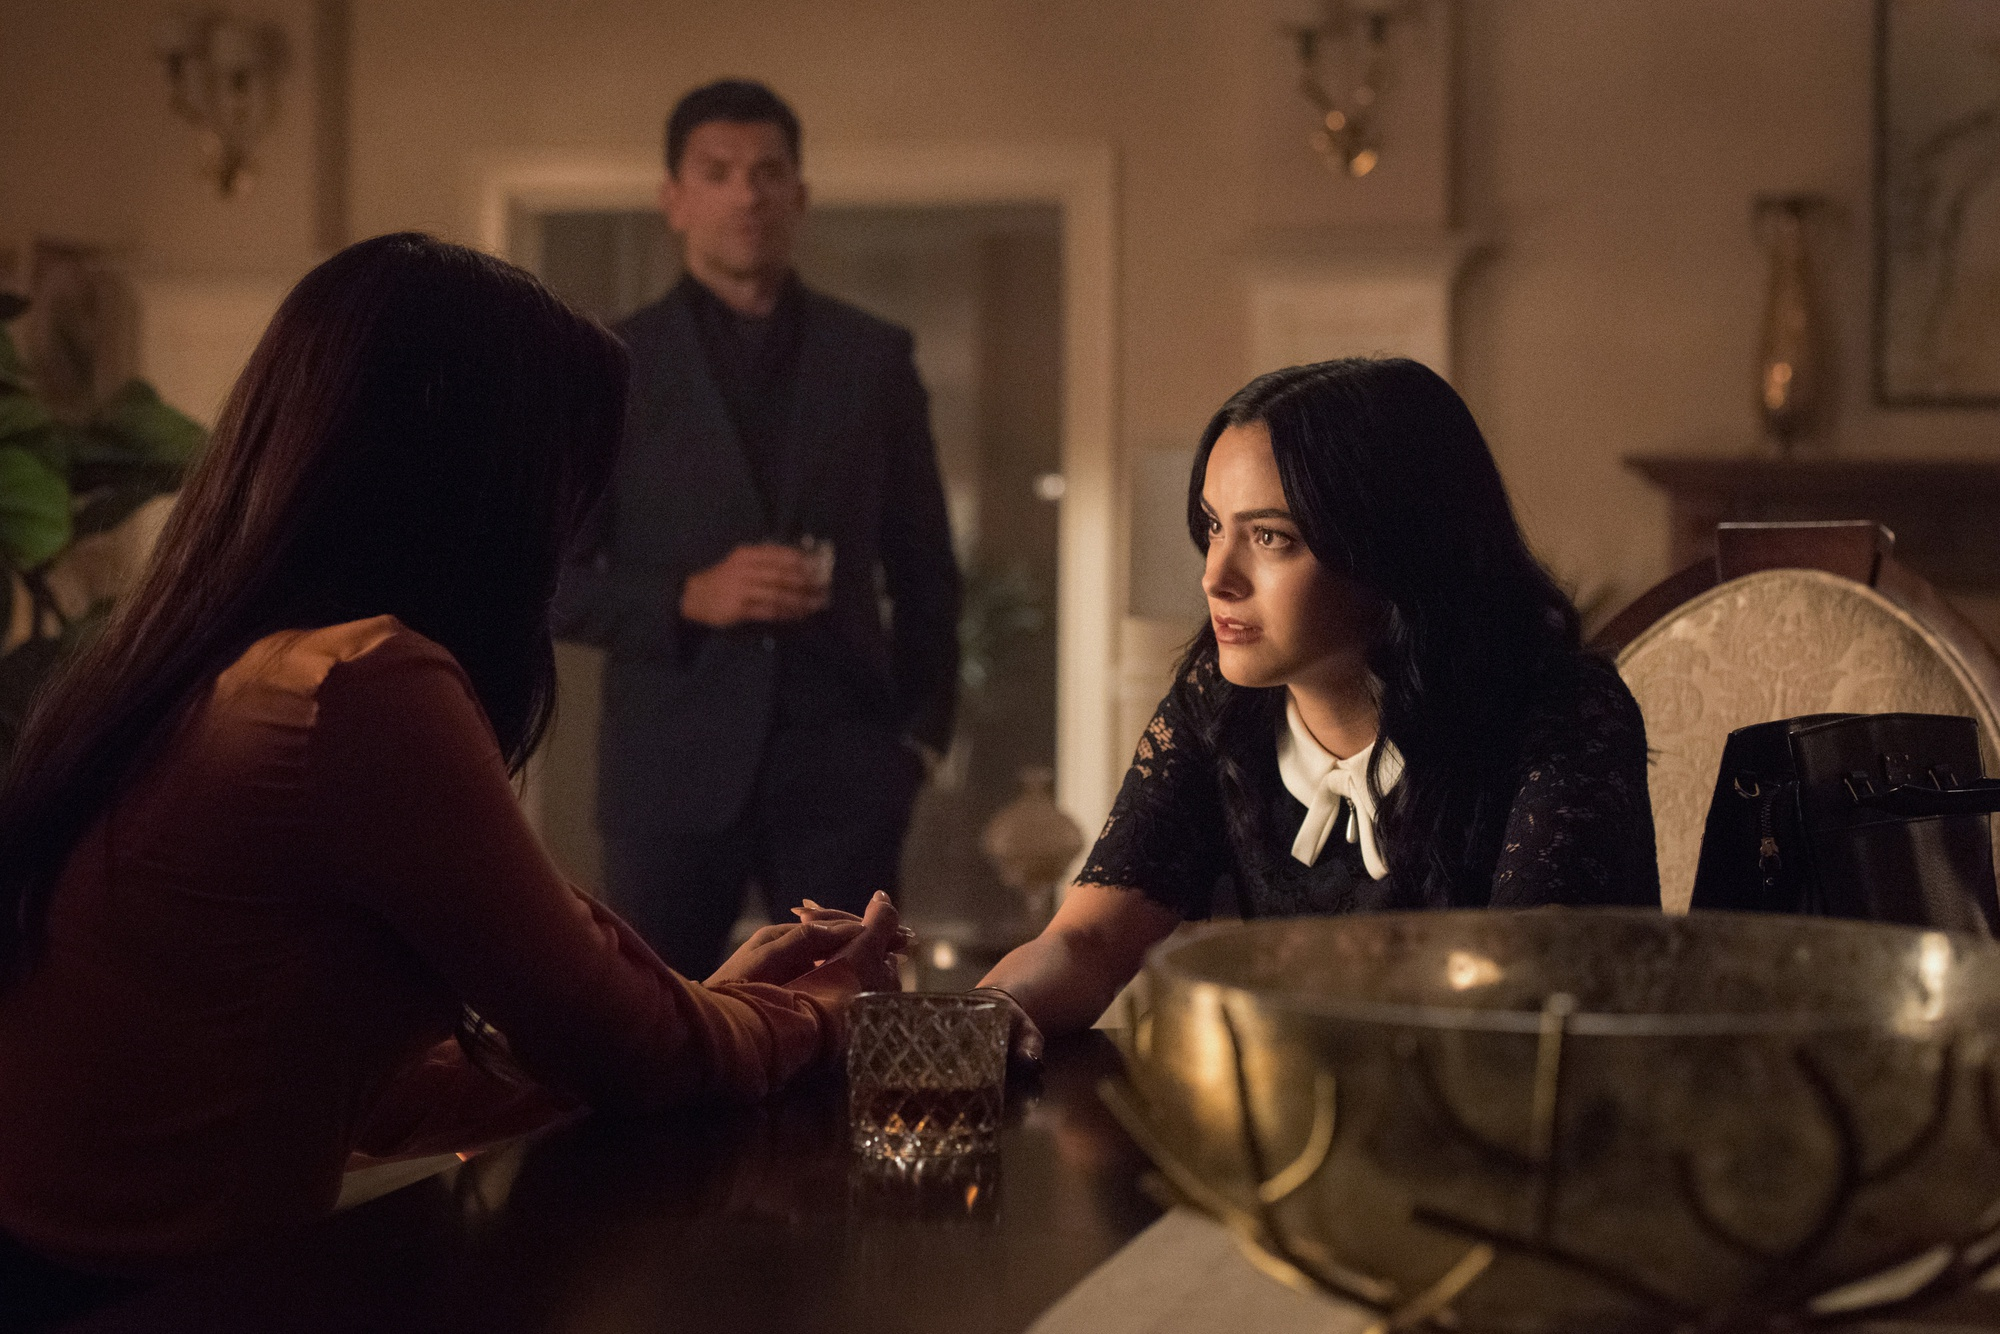 Camila Mendes as Veronica Lodge in 'Hereditary.'